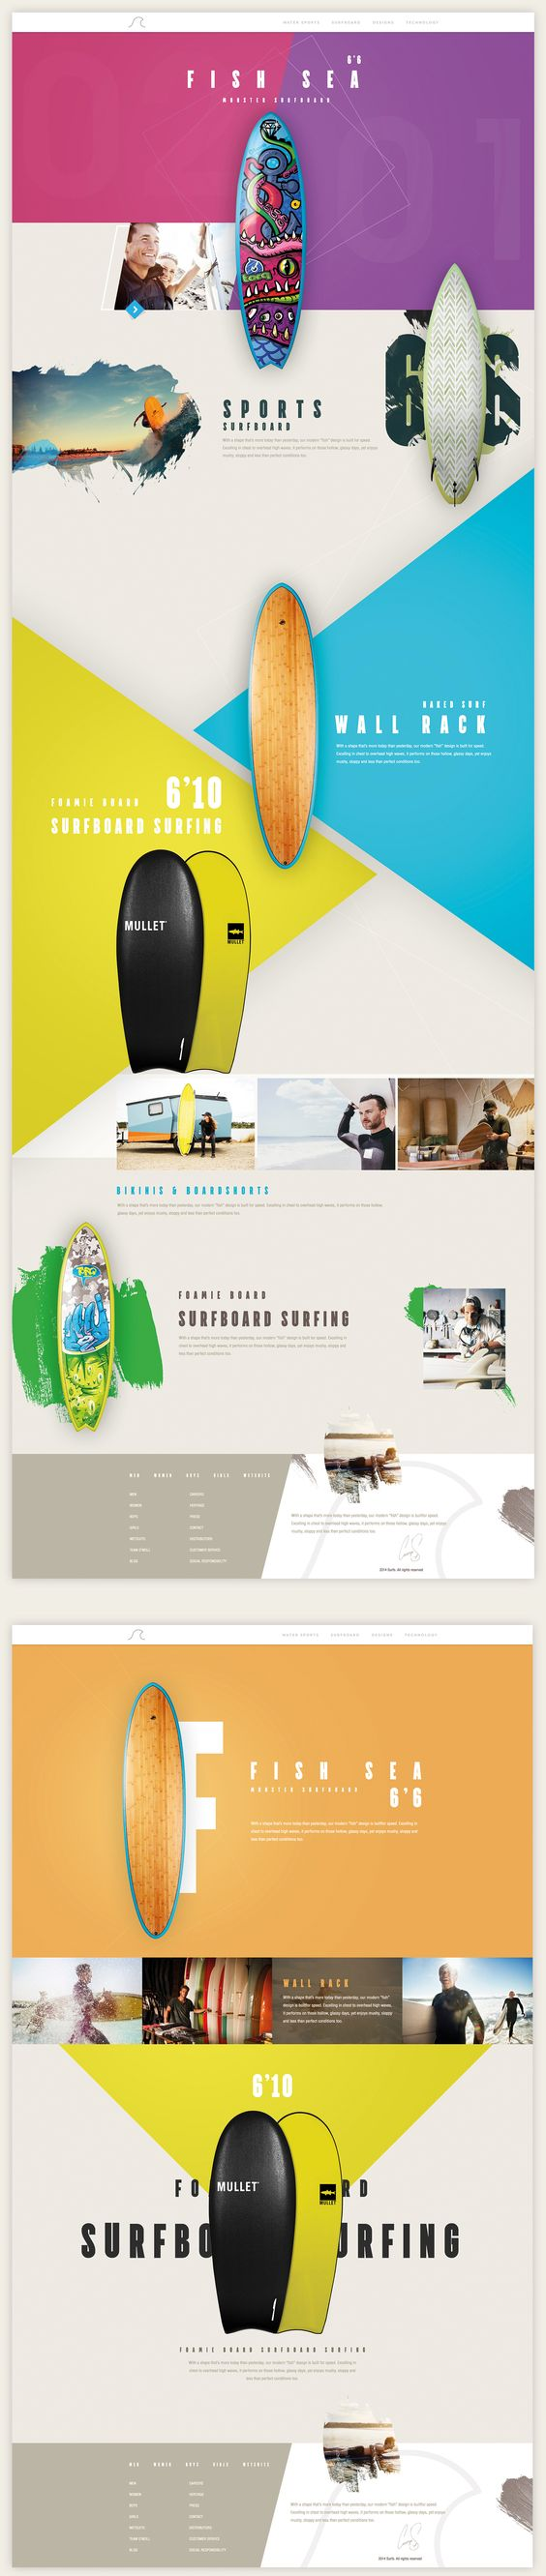 colorful web design inspiration